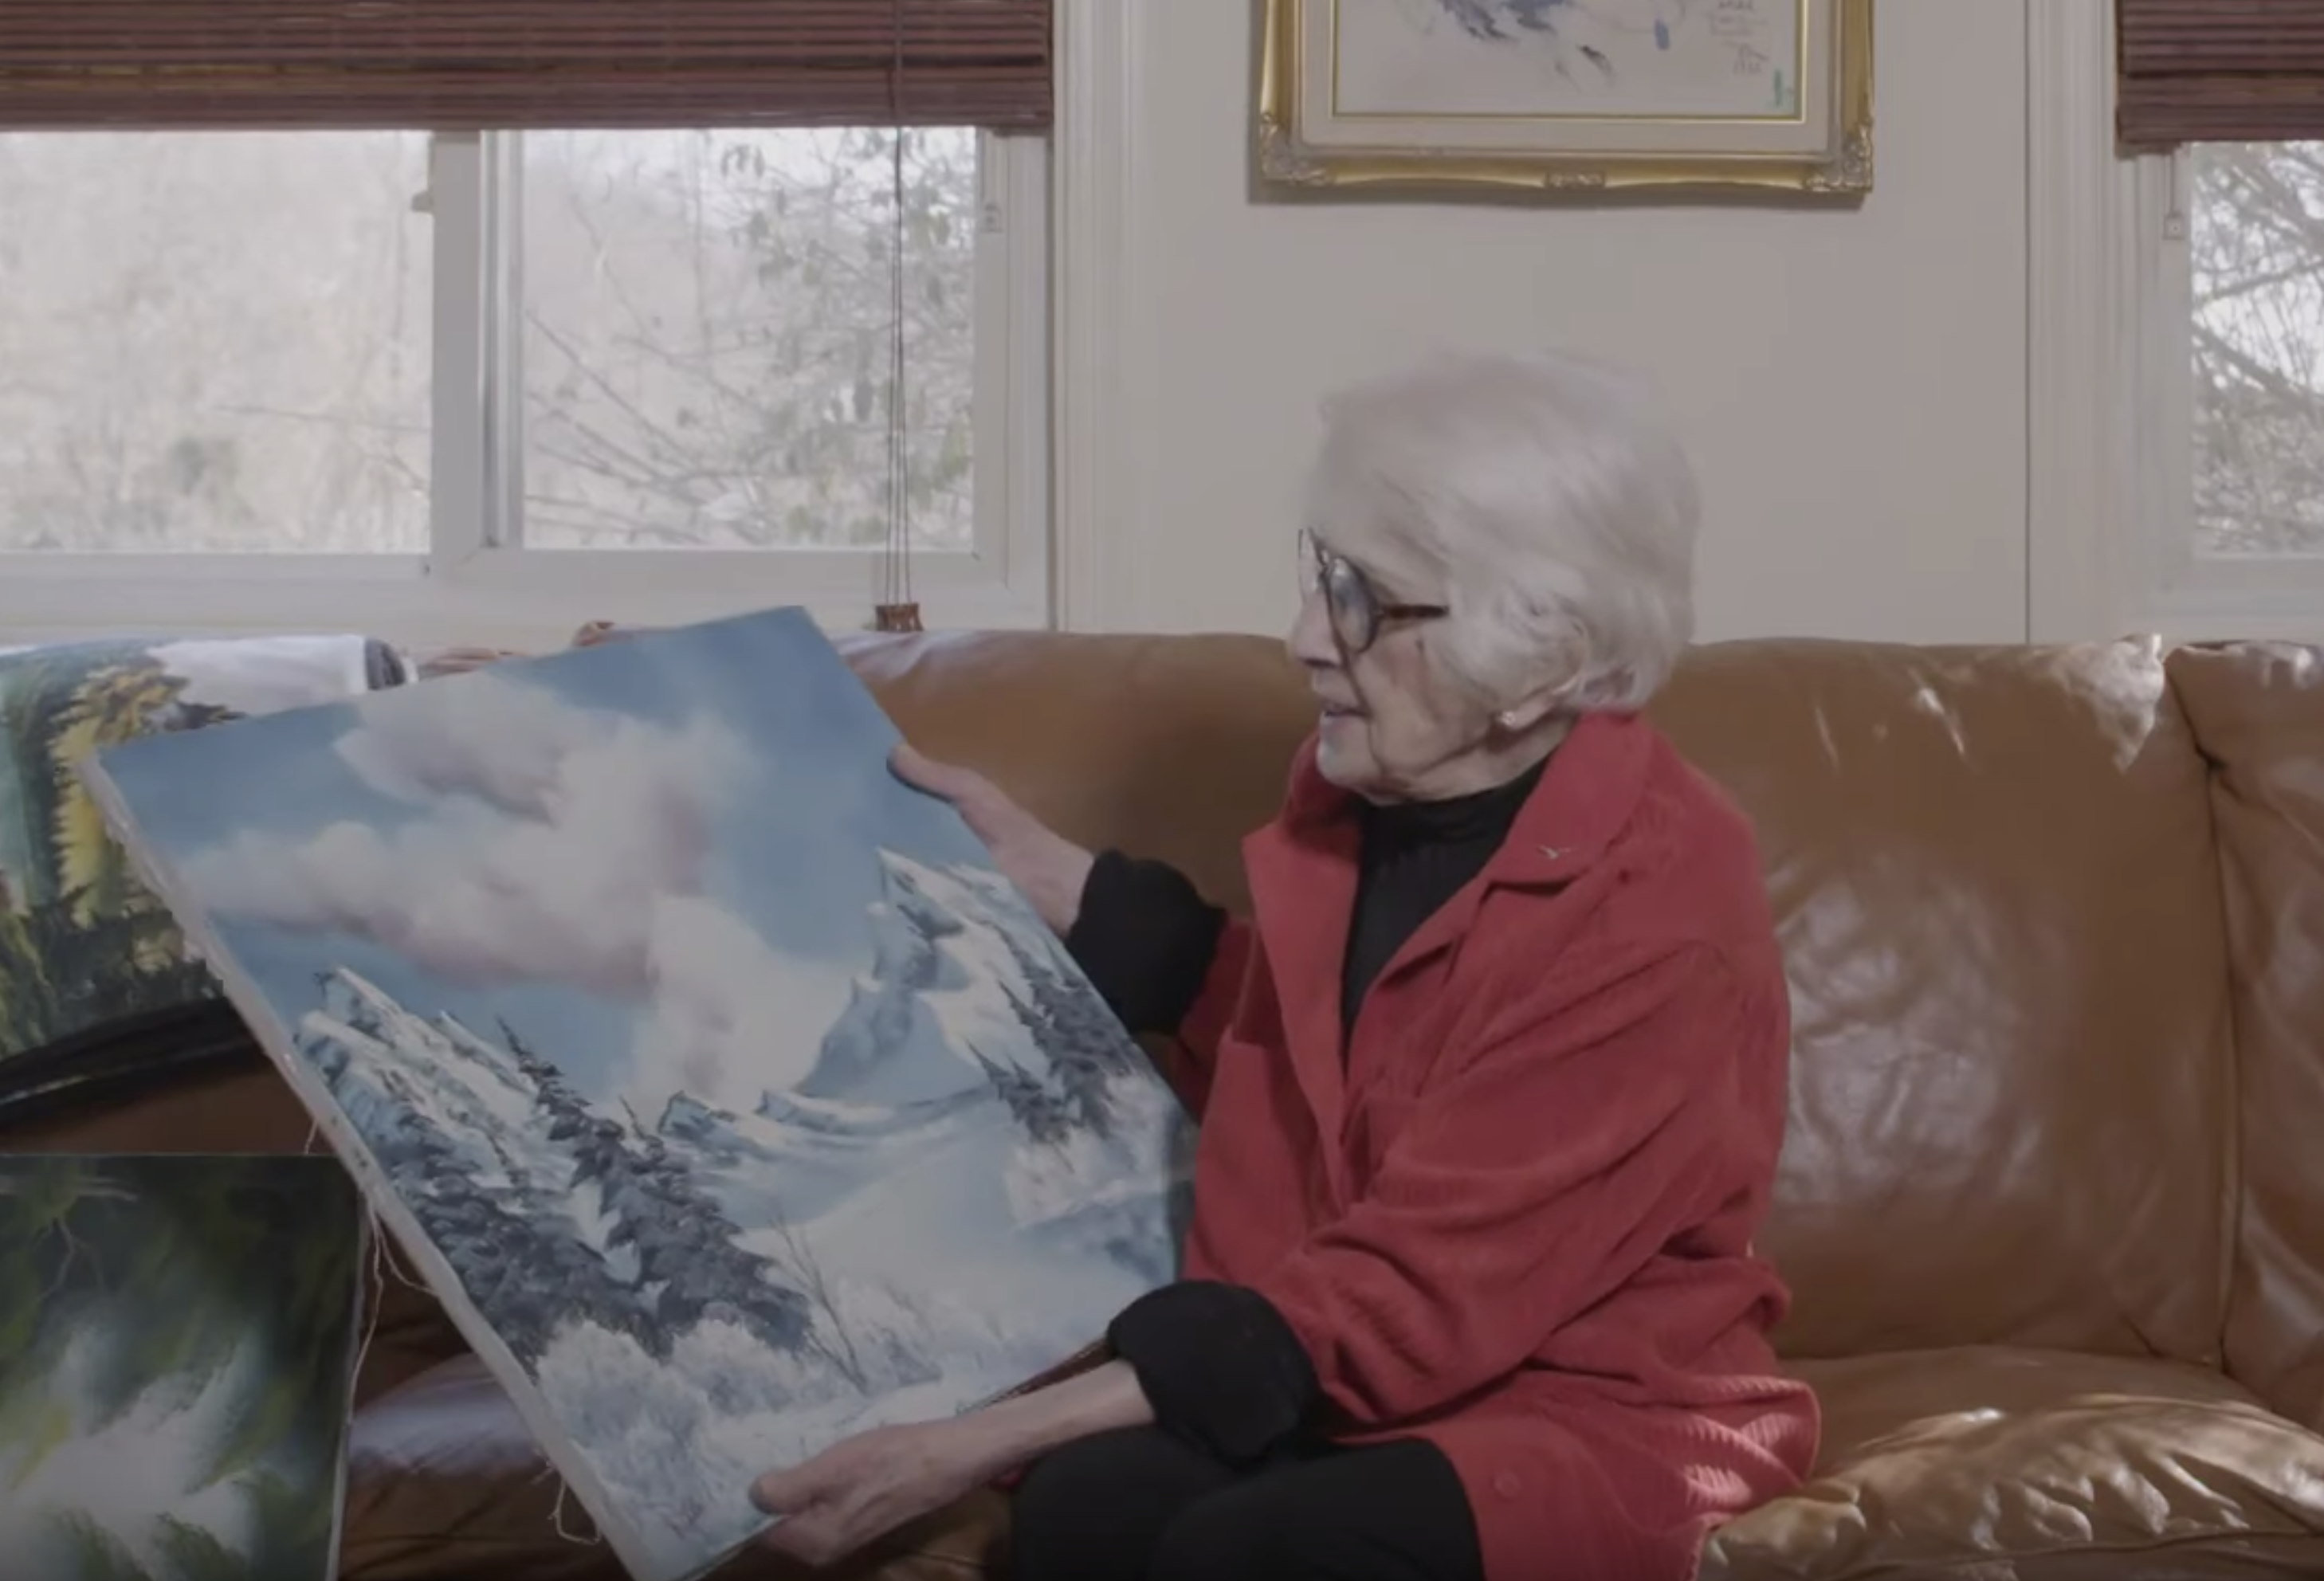 Woman holding bob ross painting on couch